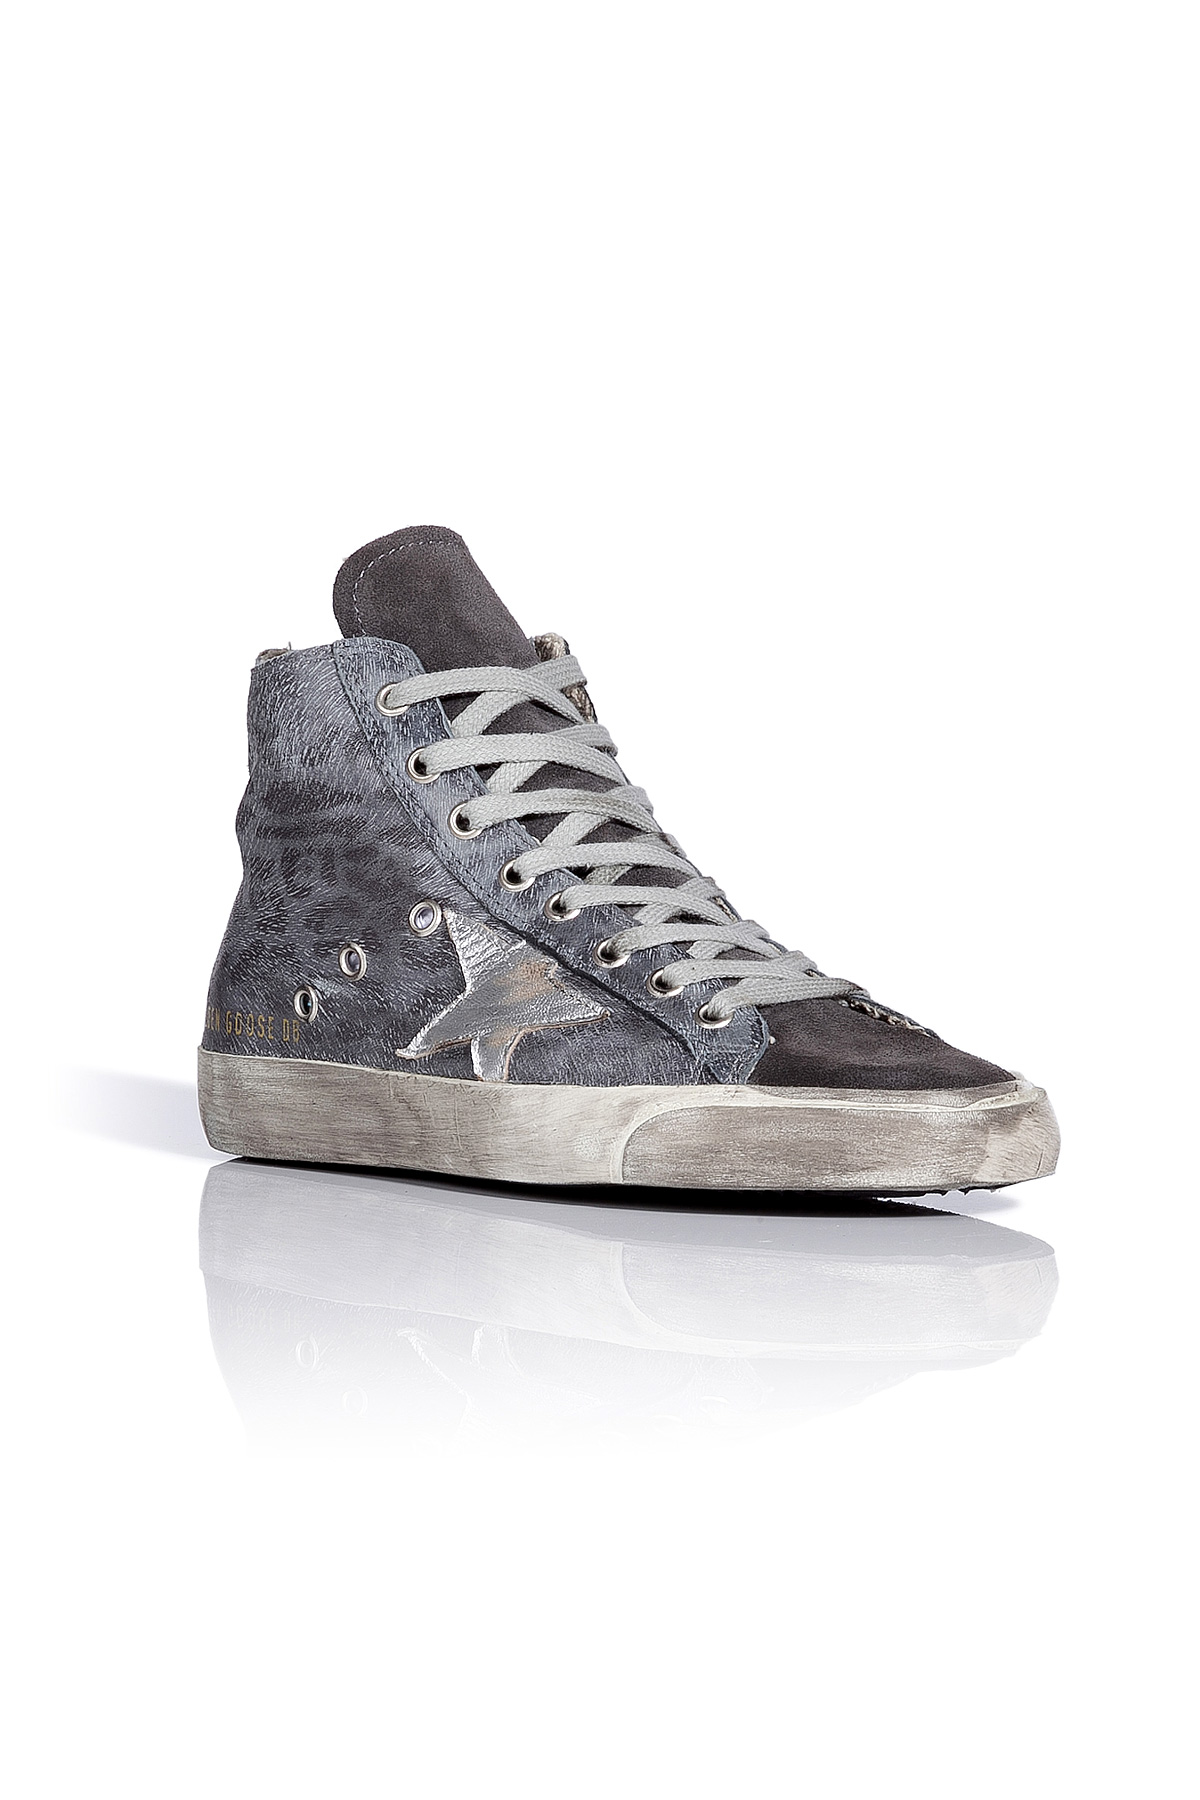 Cheapest Online Francy Leopard sneakers - Metallic Golden Goose Buy Authentic Online PRpiKT